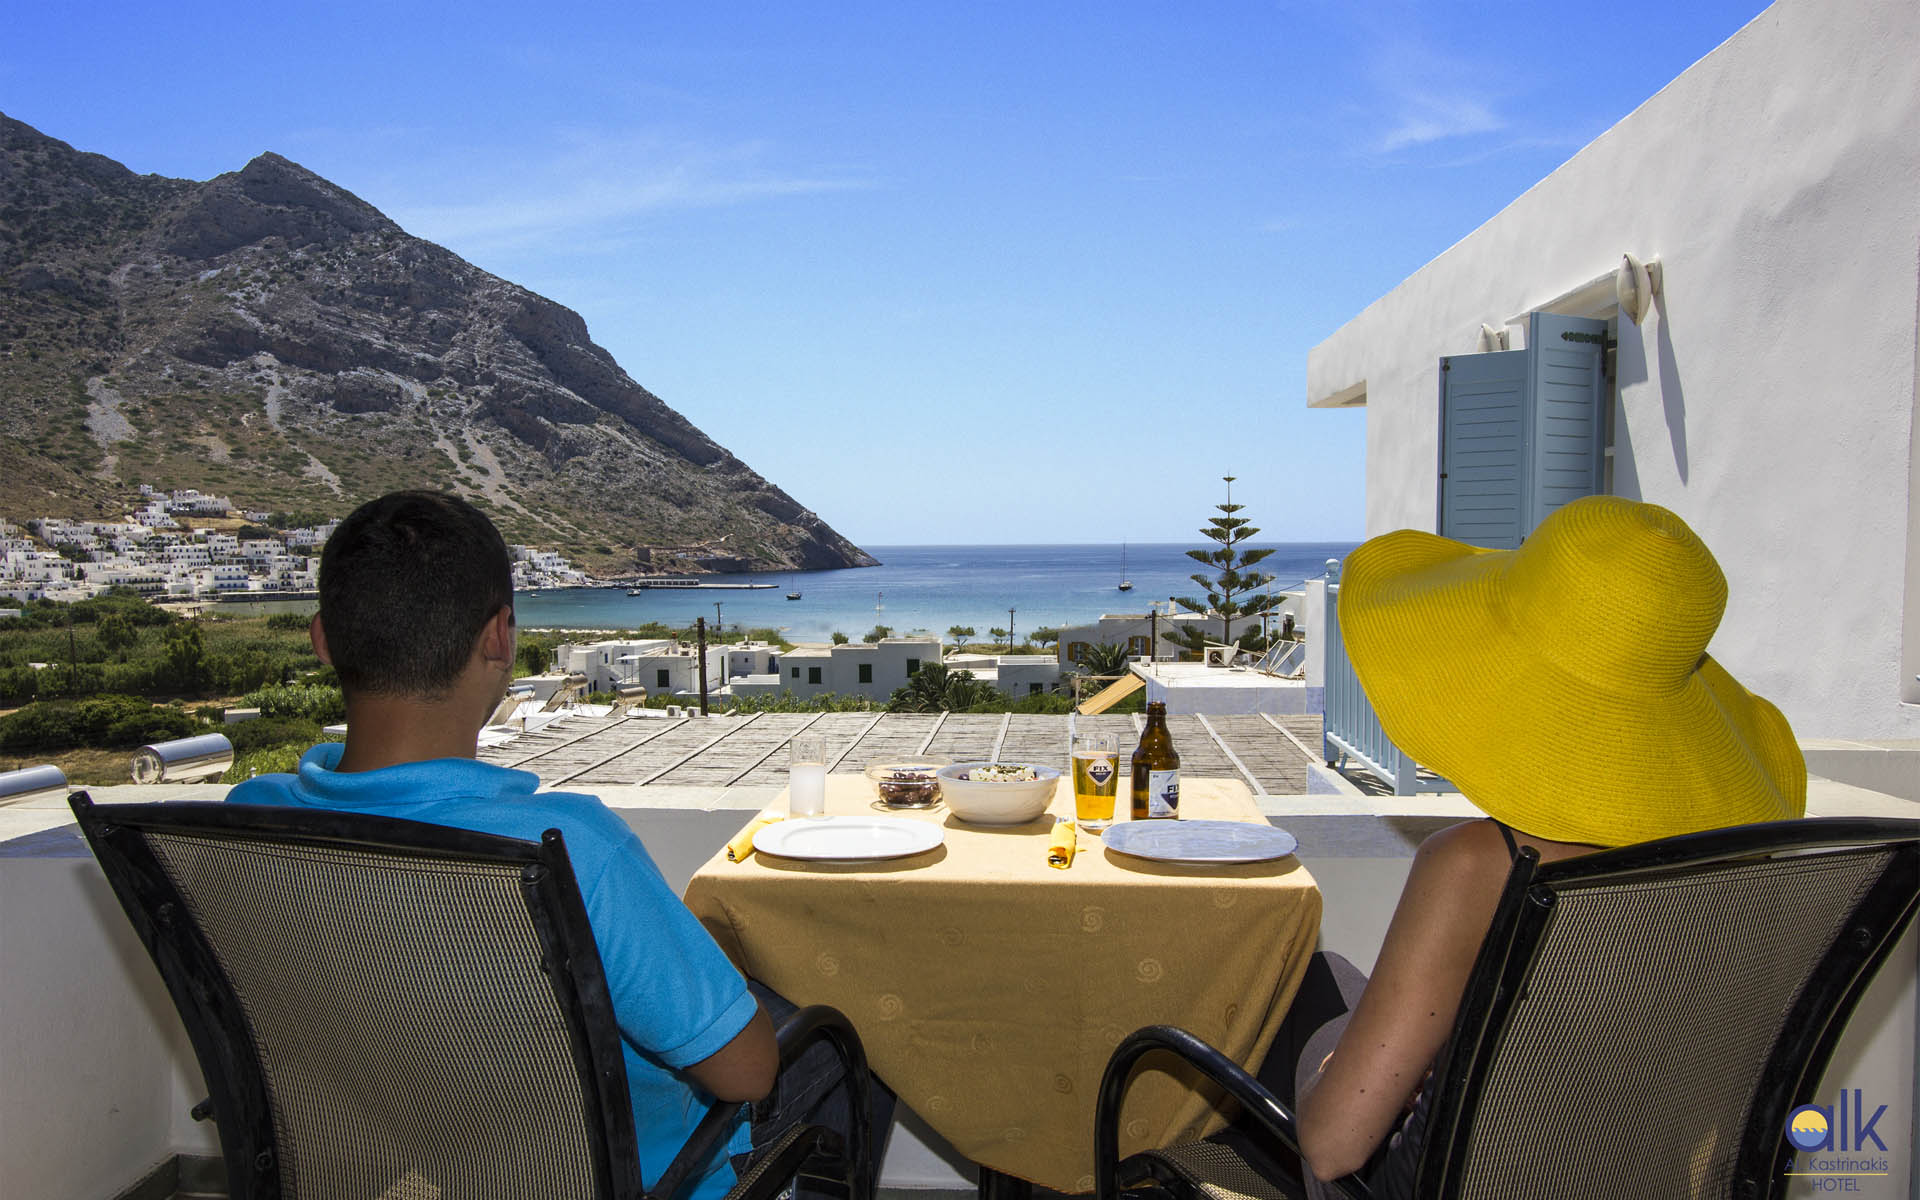 Breakfast on the terrace with kamares view alkhotel for Breakfast terrace